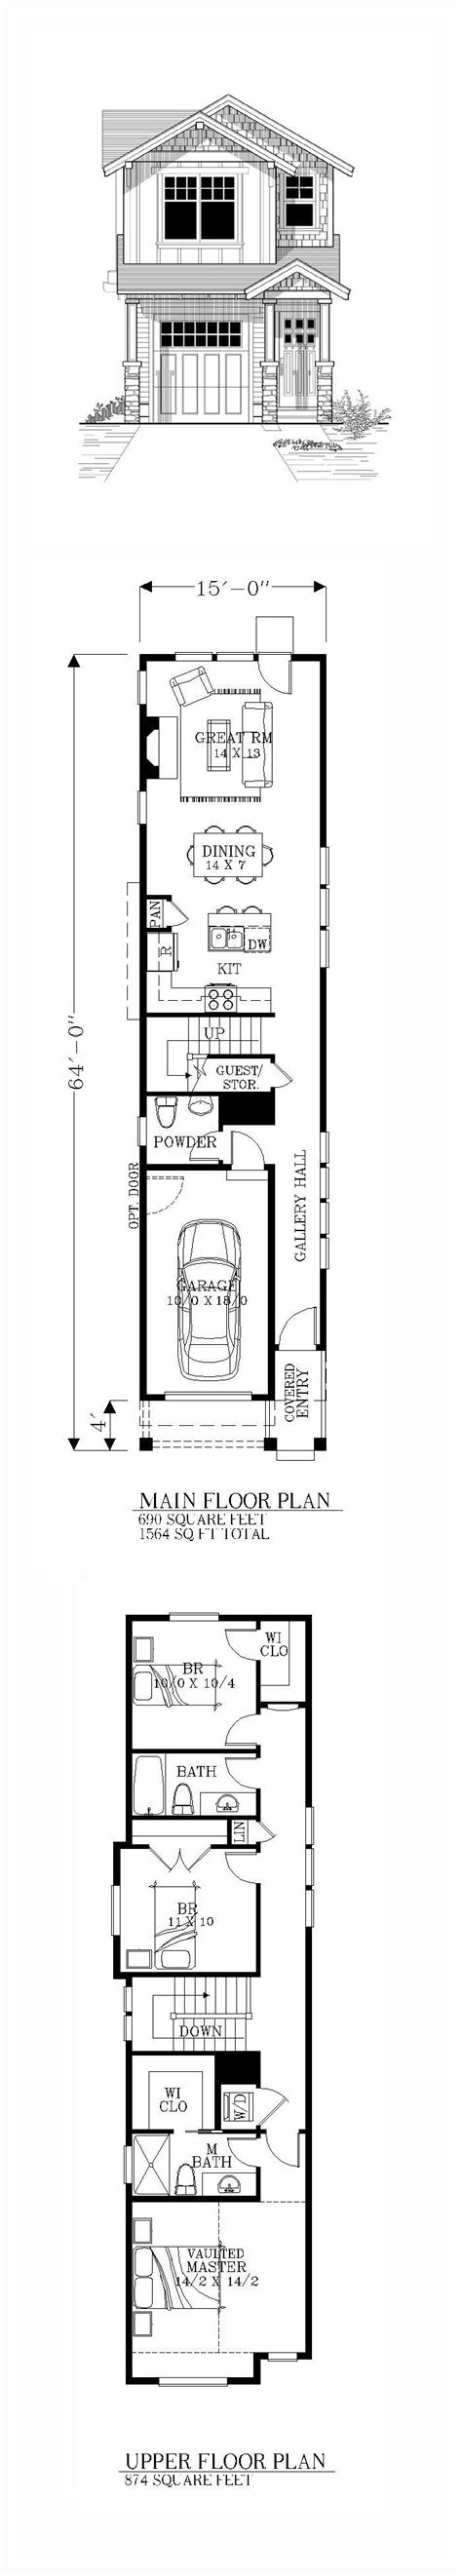 house plans for long narrow lots best 25 narrow house plans ideas on pinterest